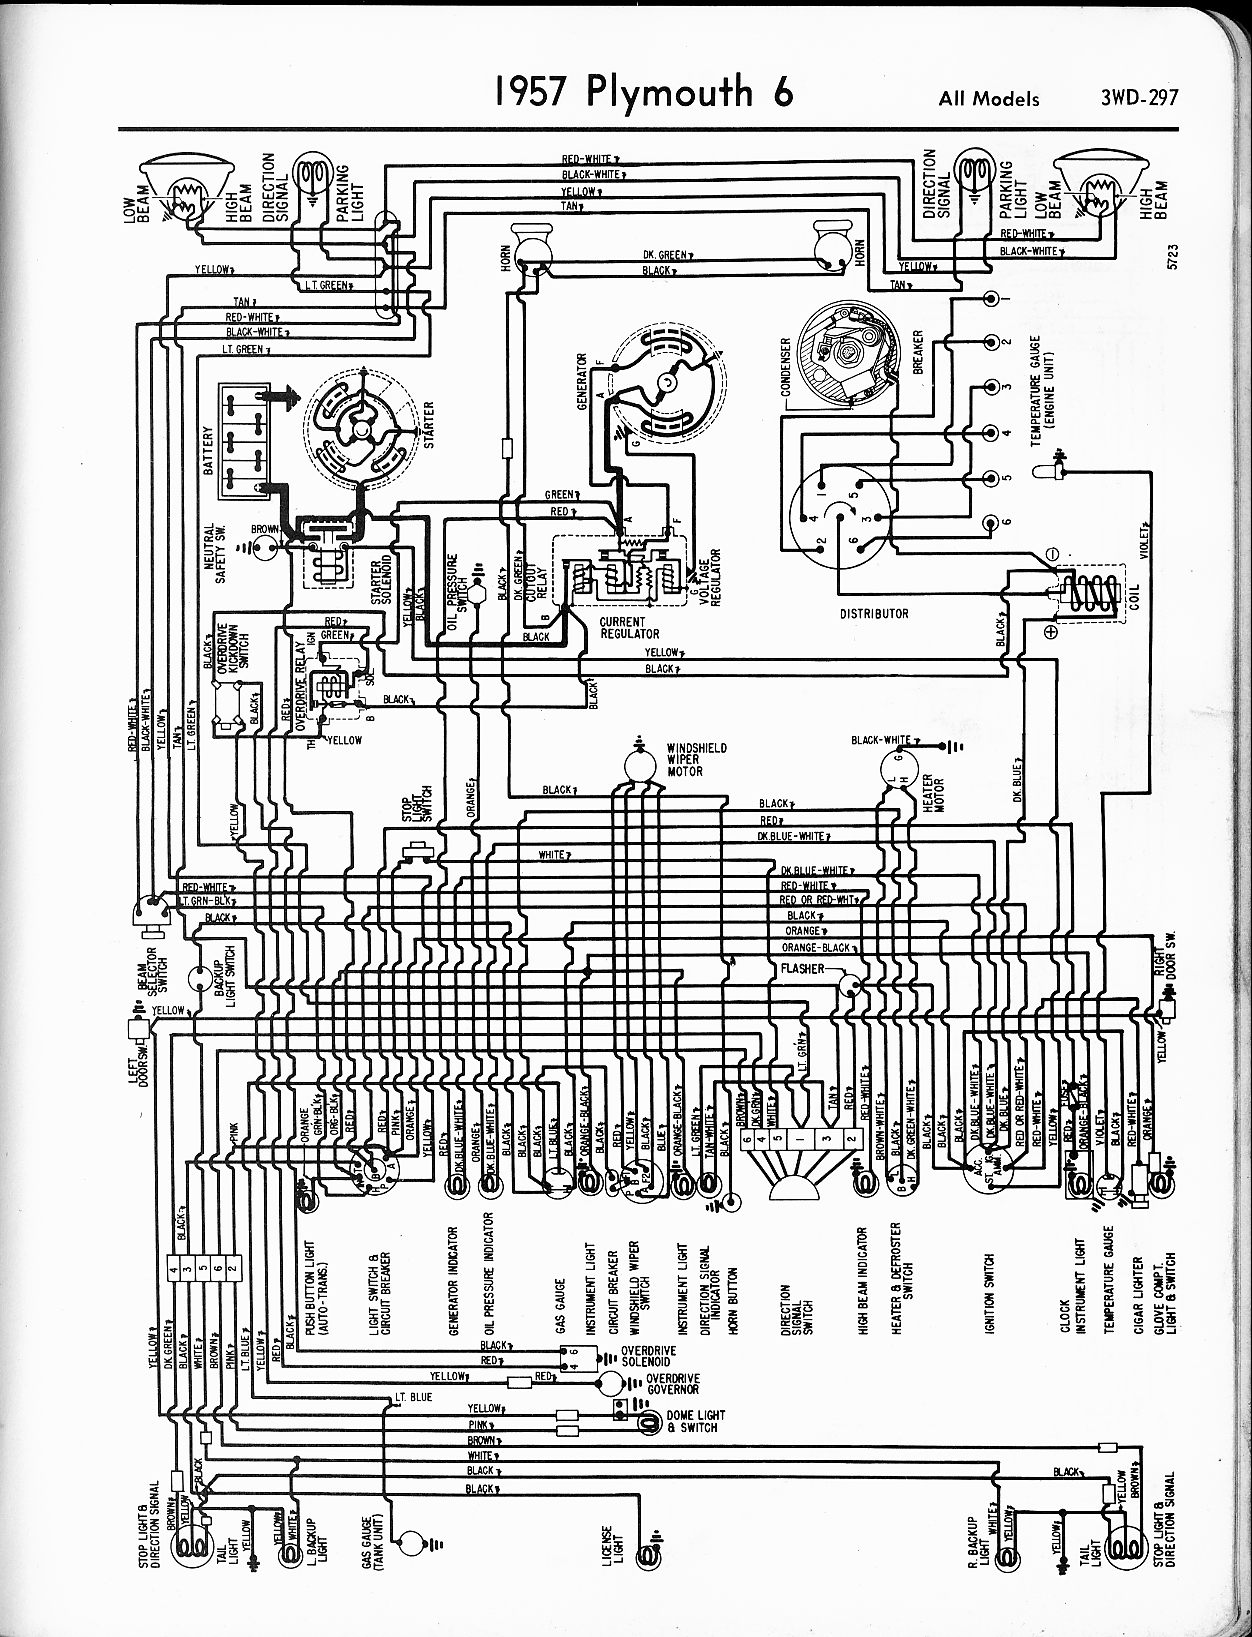 1955 Plymouth Belvedere Wiring Diagram - Wiring Data